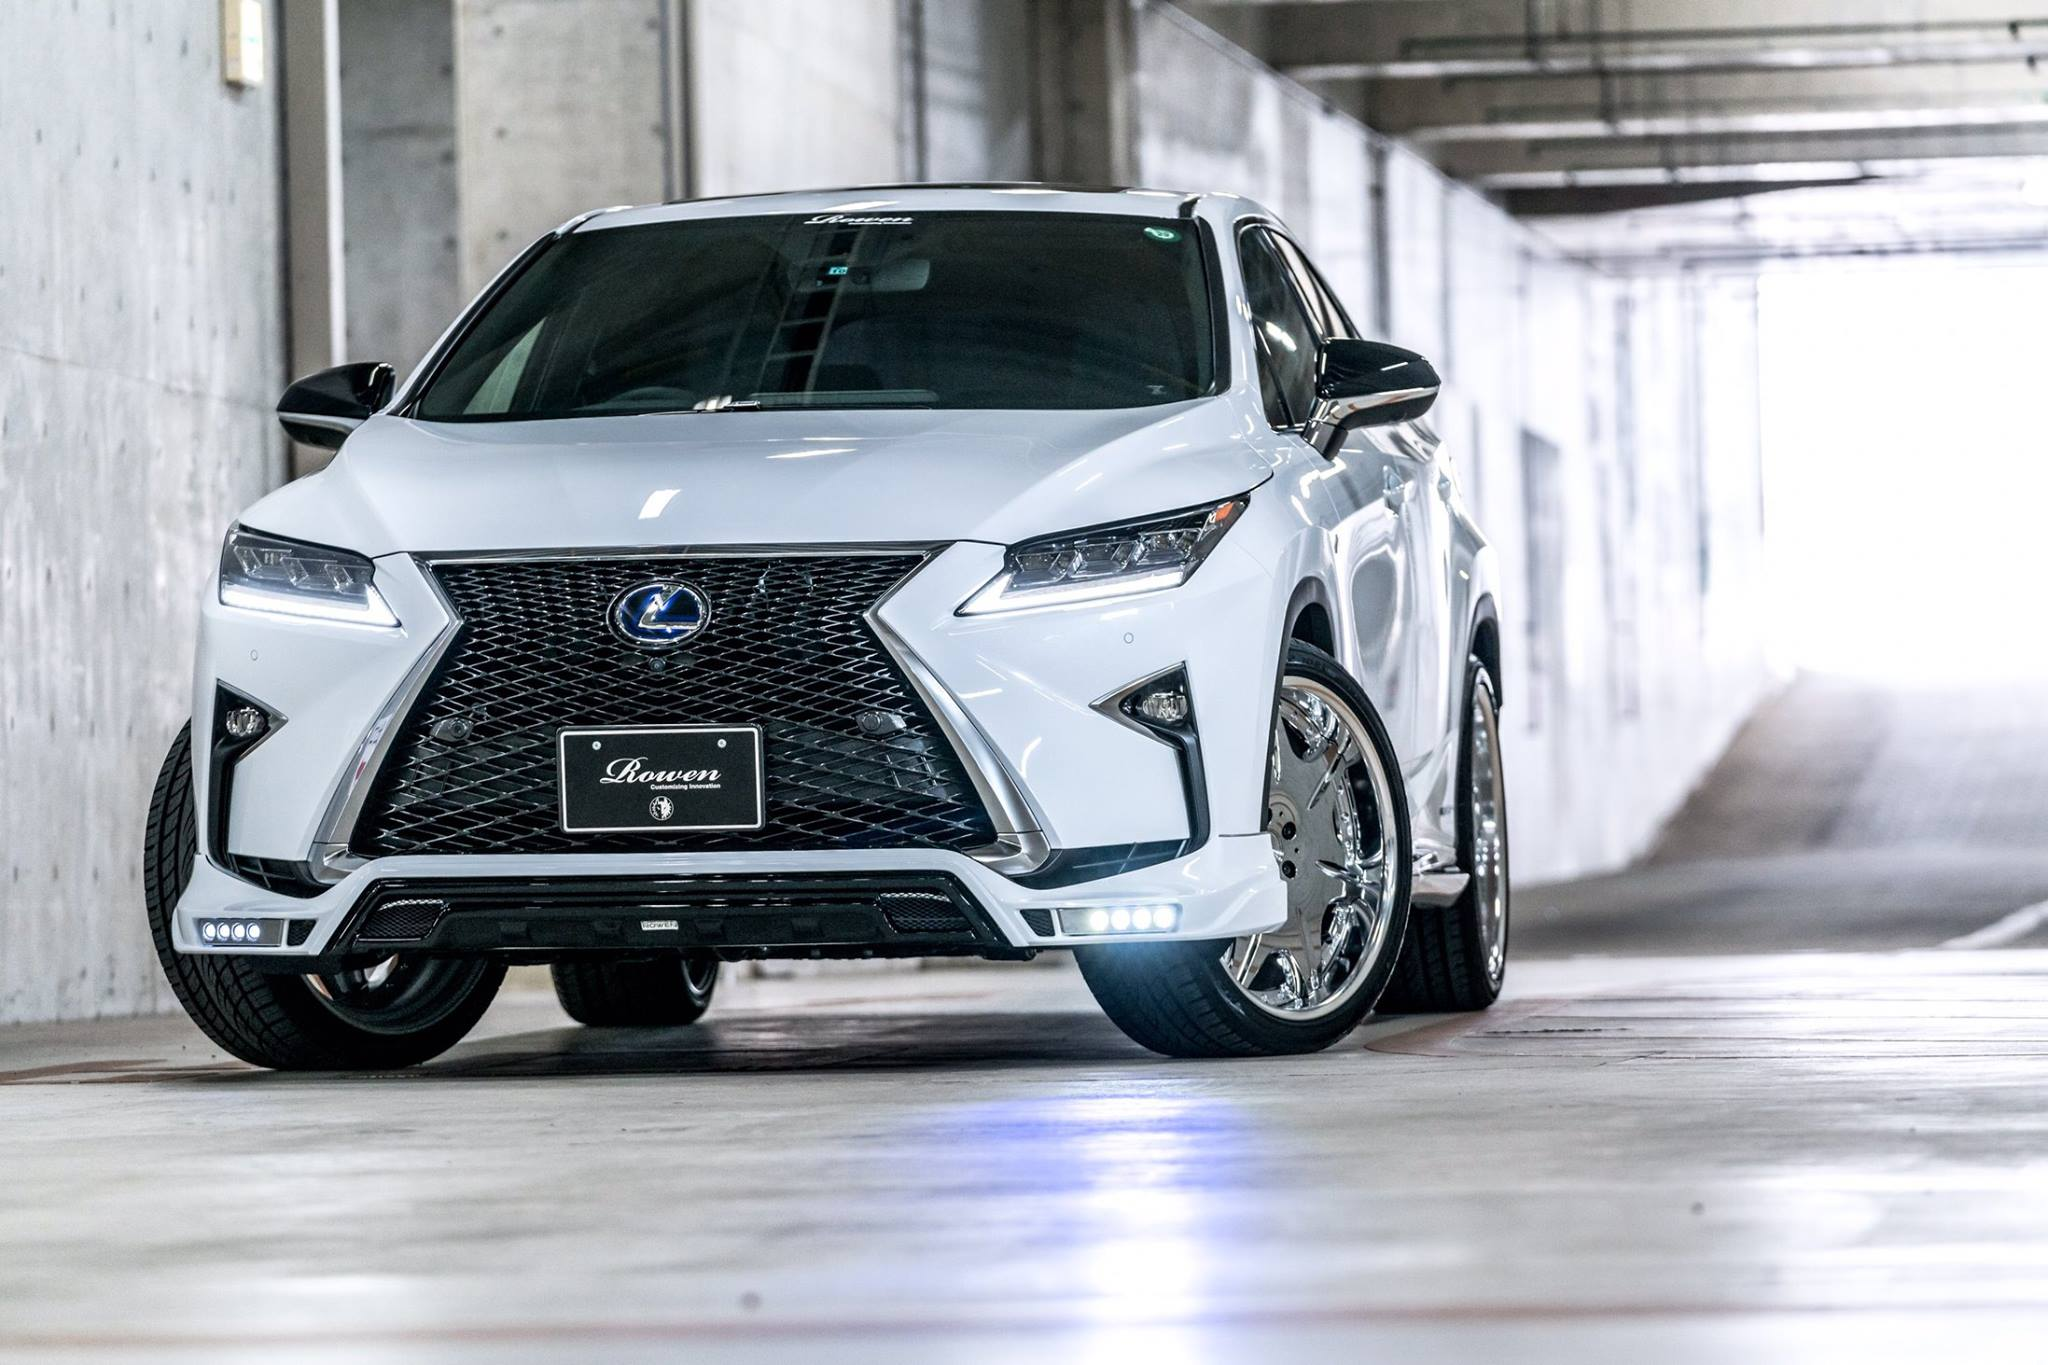 Lexus Rx F Sport With Rowen Body Kit Has Quad Exhaust